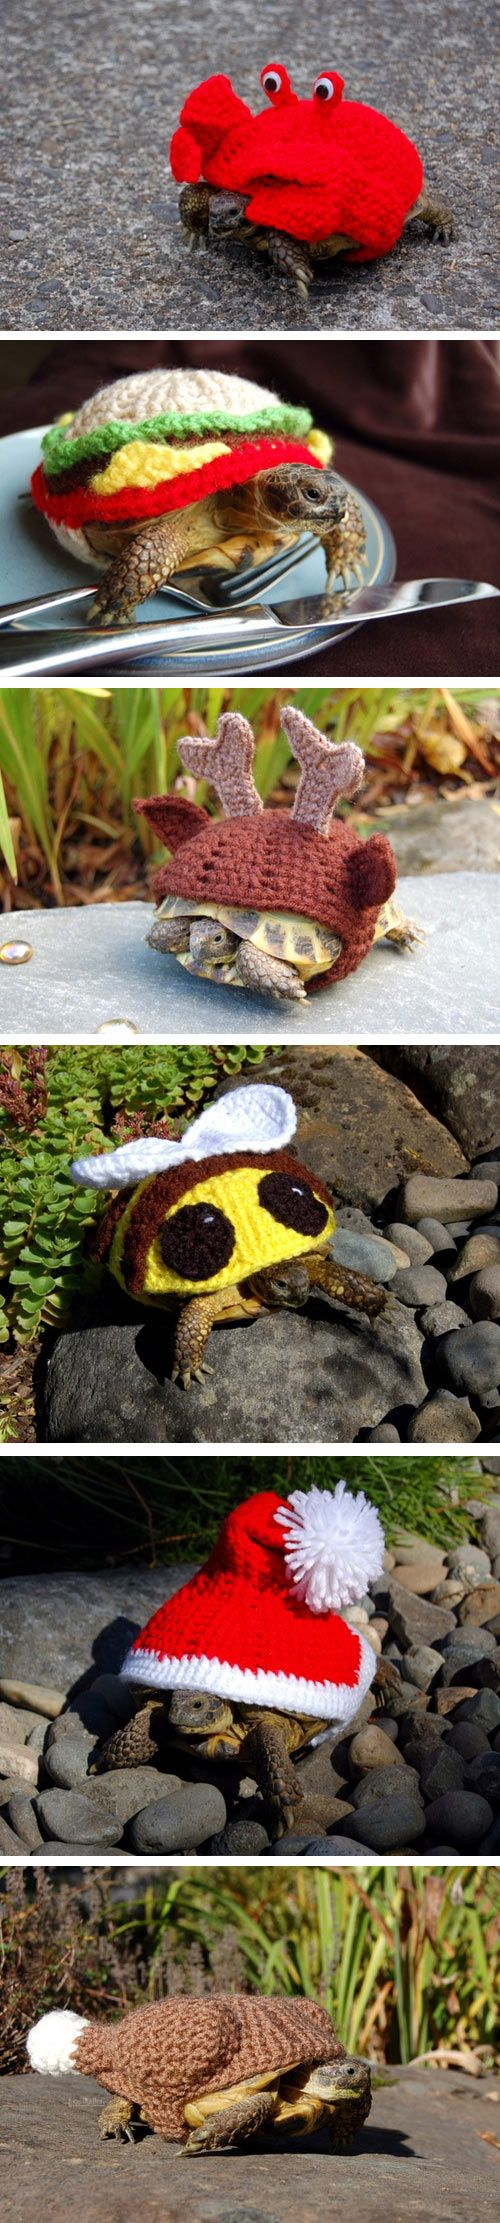 funny-tortoise-wool-cozies-knitted-costume